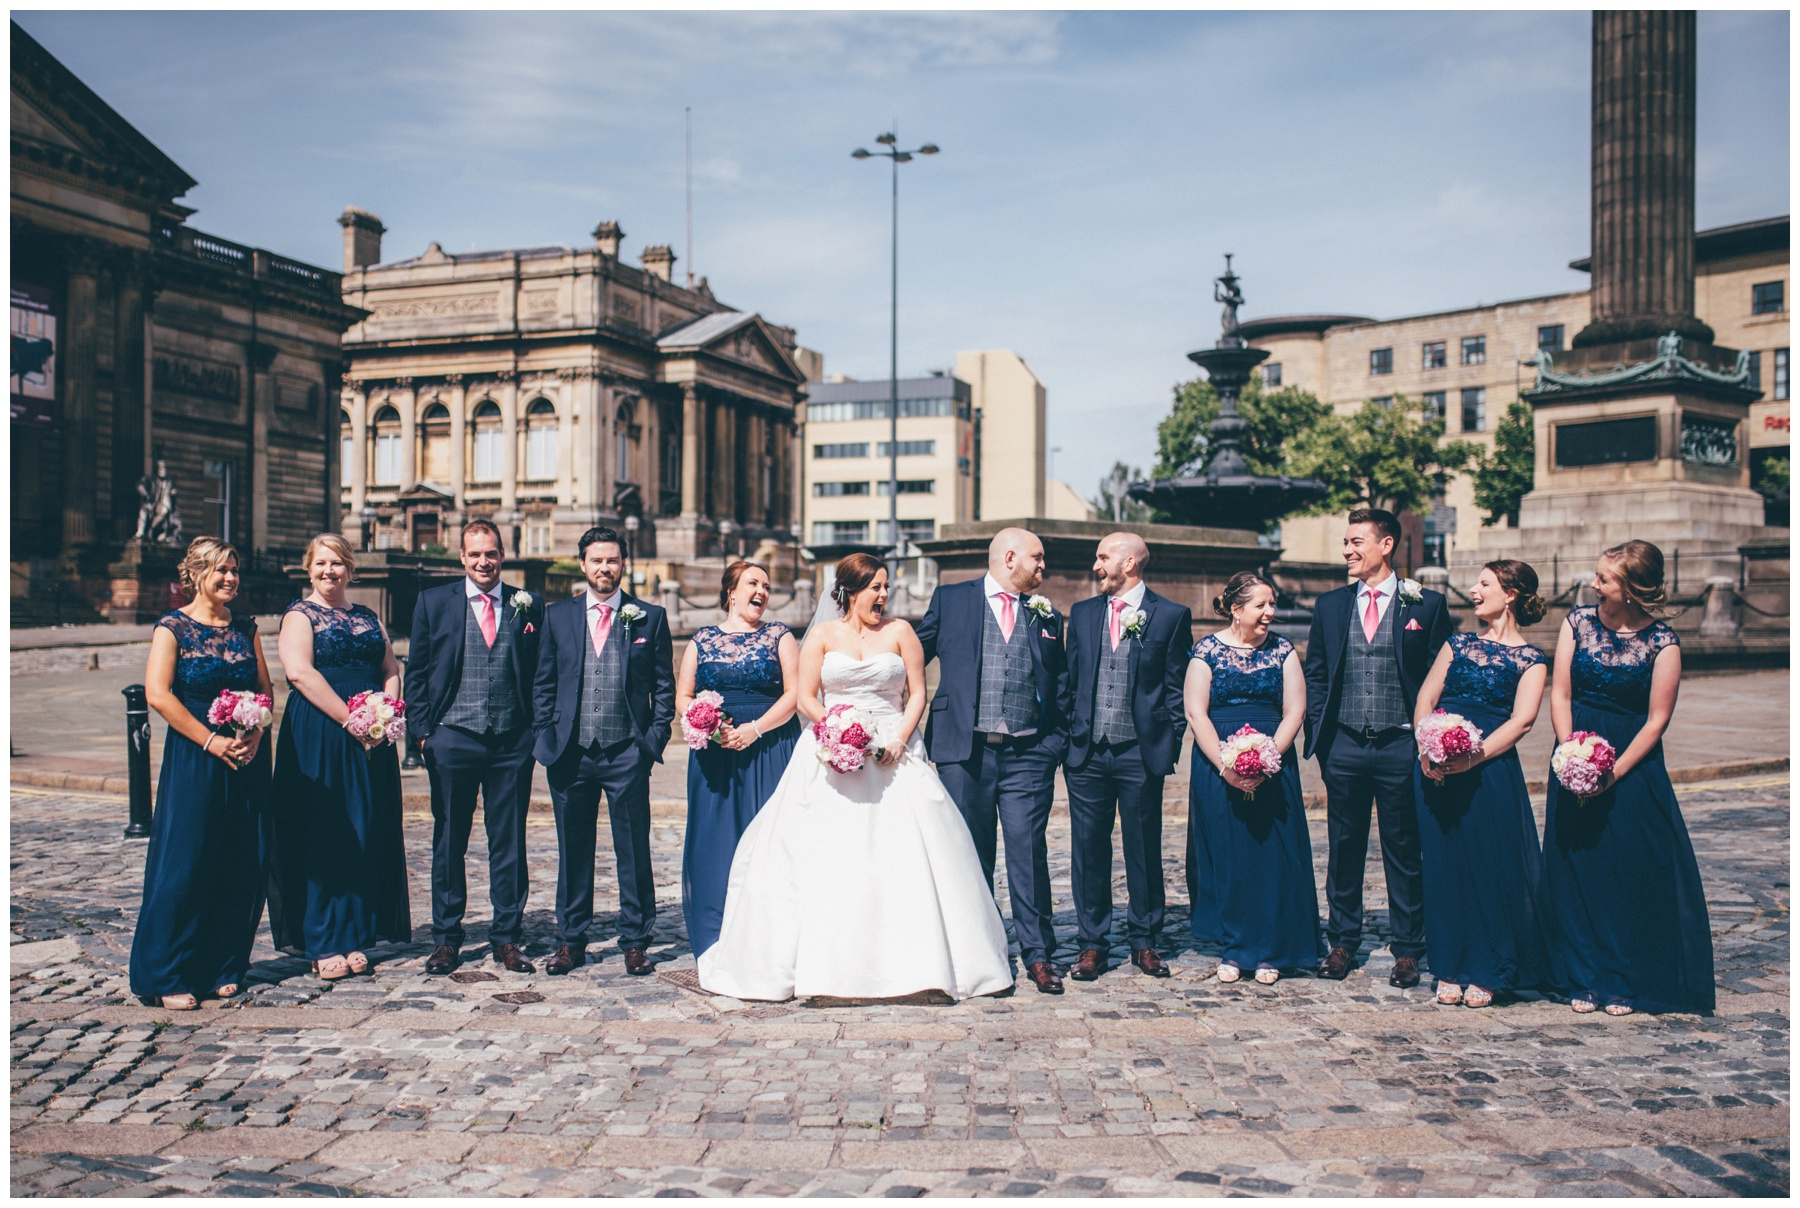 Bride, groom and Their bridal party all together outside St Georges Hall in Liverpool.